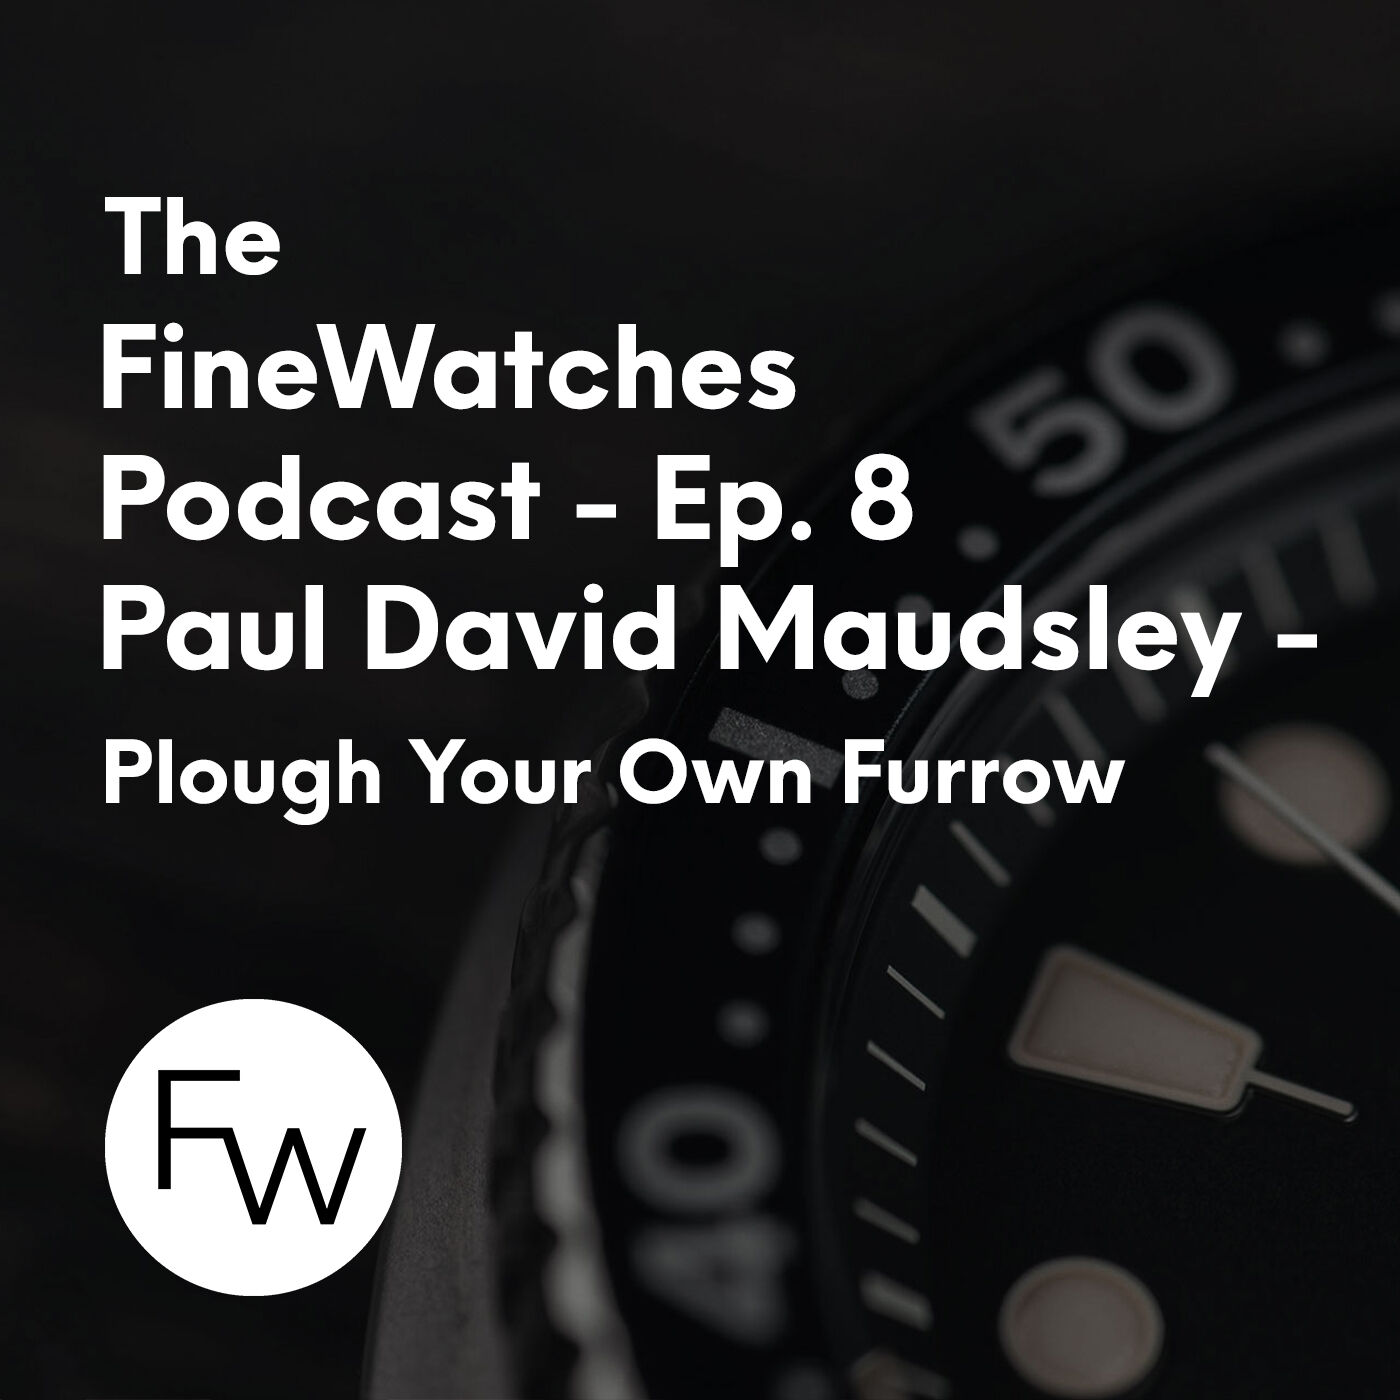 Plough Your Own Furrow - Time with Paul David Maudsley